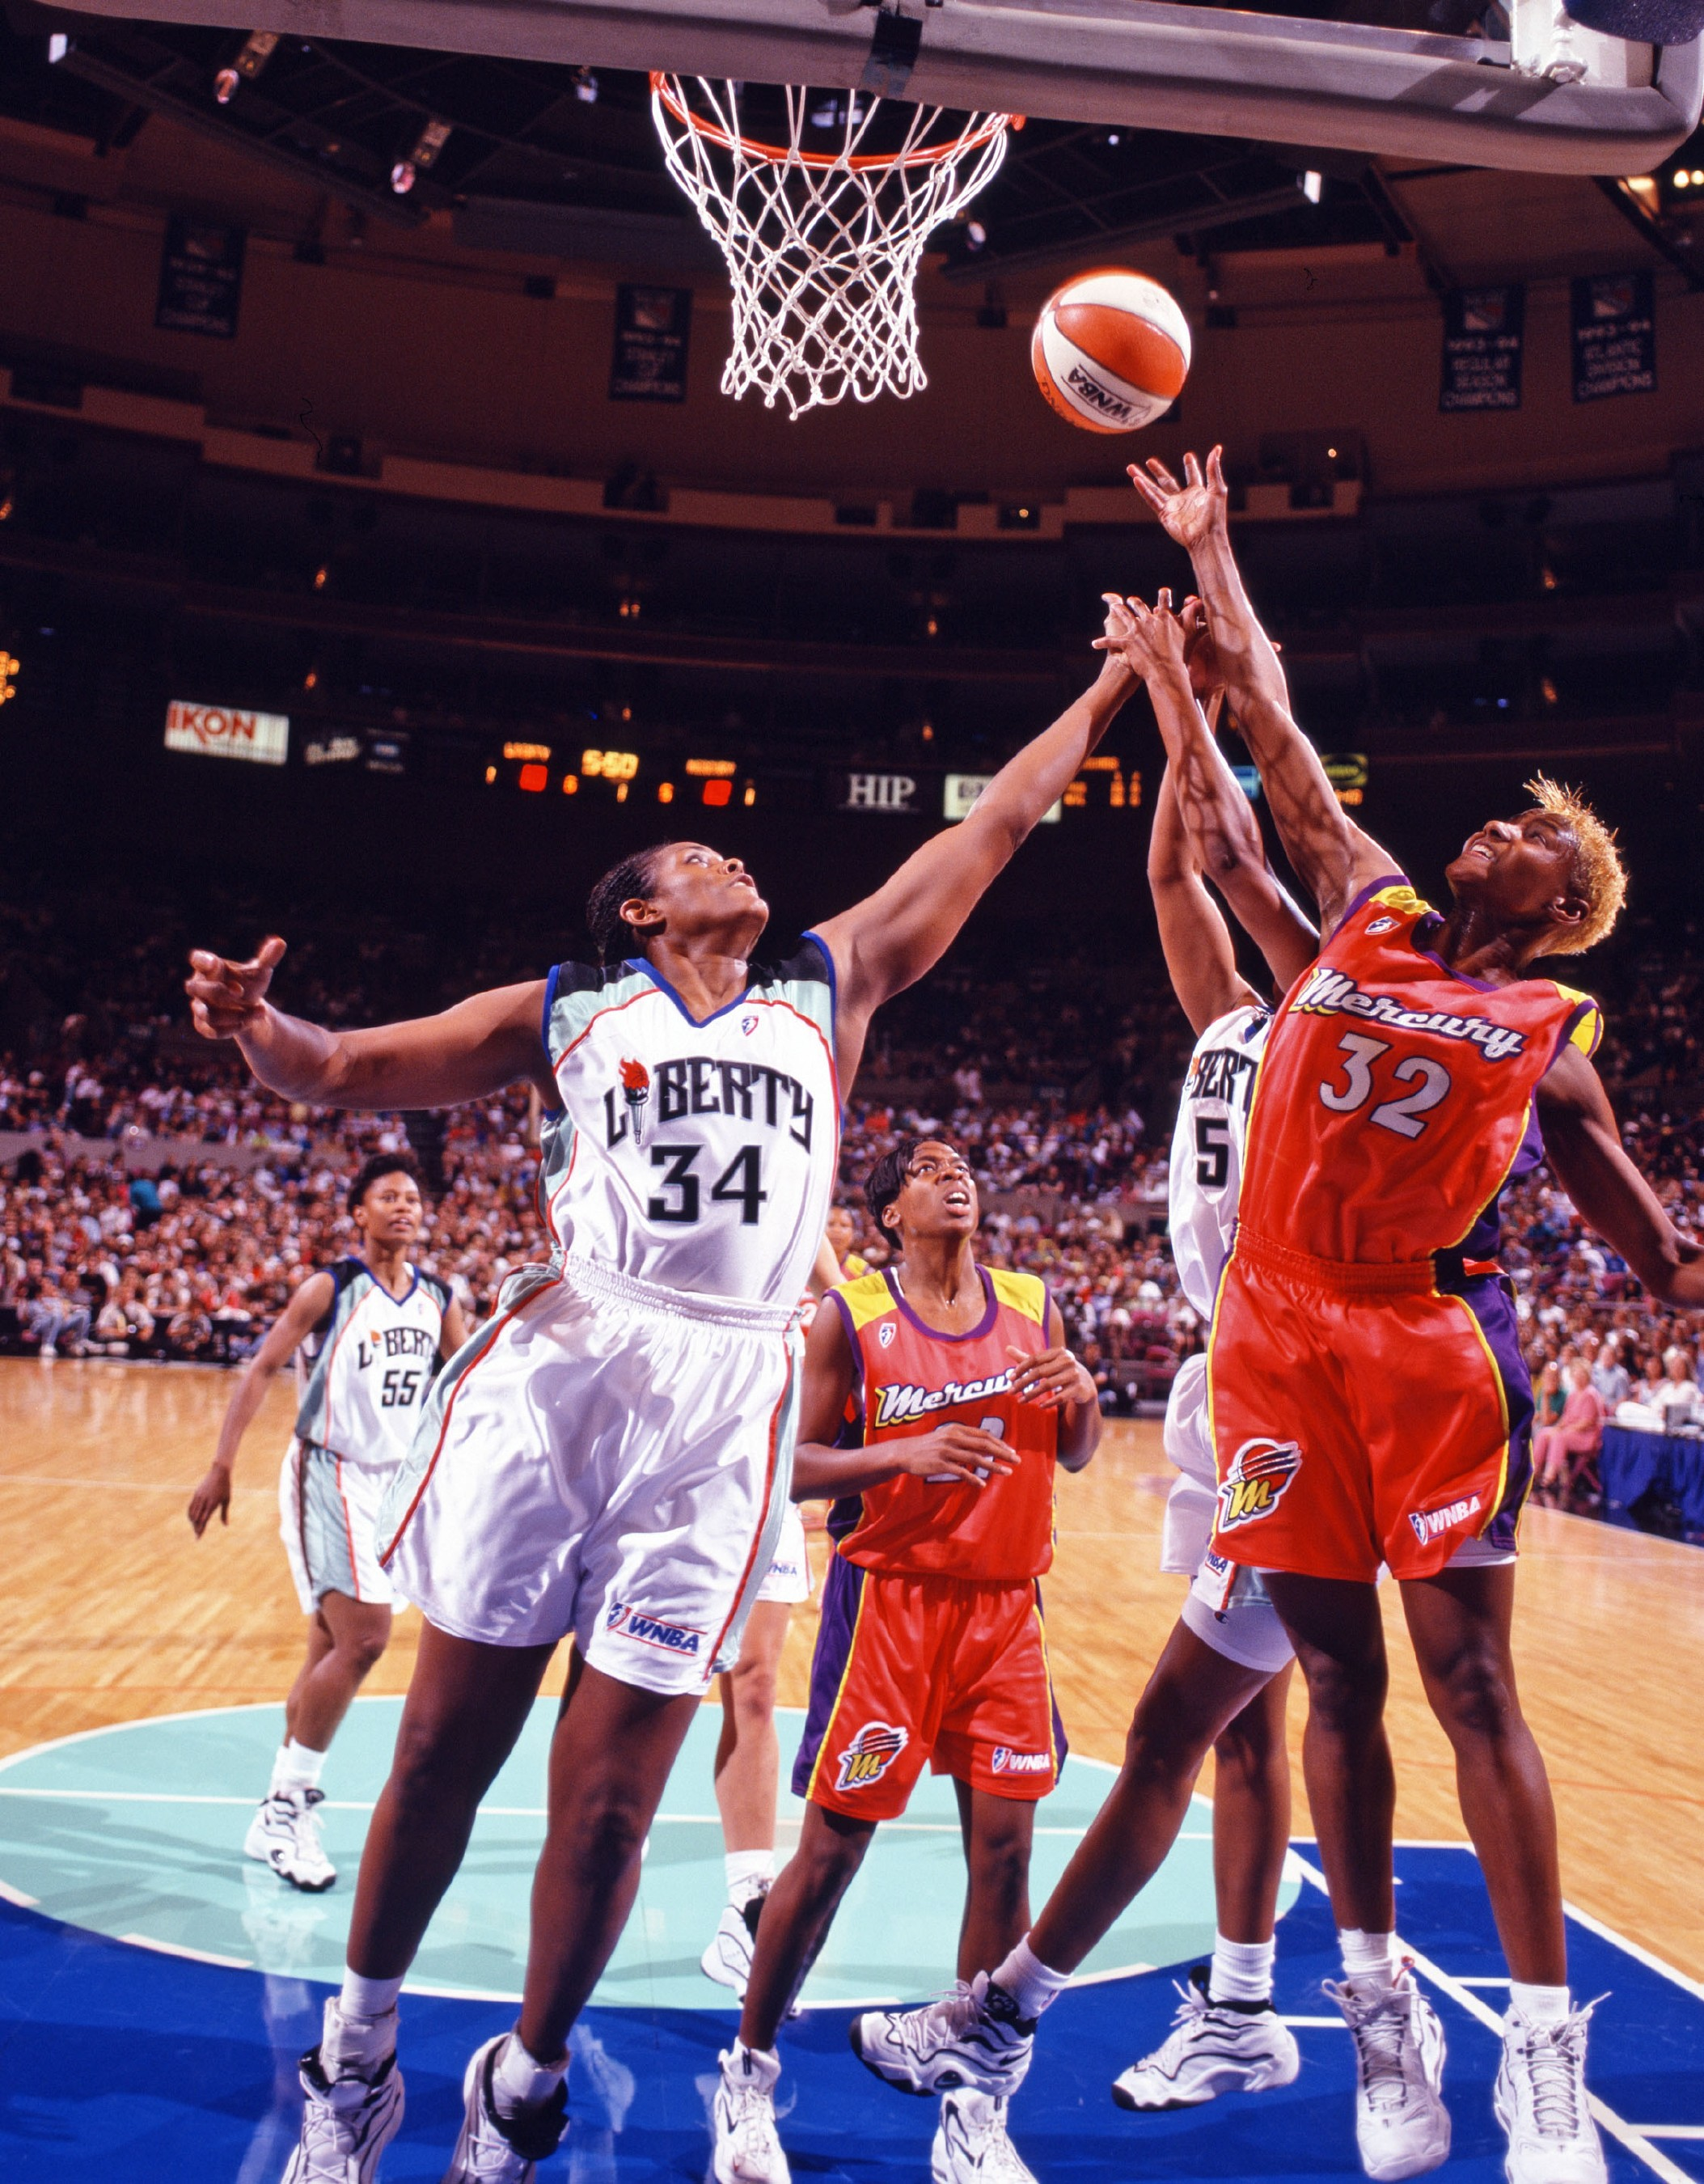 June 29, 1997; The New York Liberty v. The Phoenix Mercury. The Liberty make their debut at Madison Square Garden in front of a crowd of 17,780, earning their first home win by defeating Phoenix 65-57.